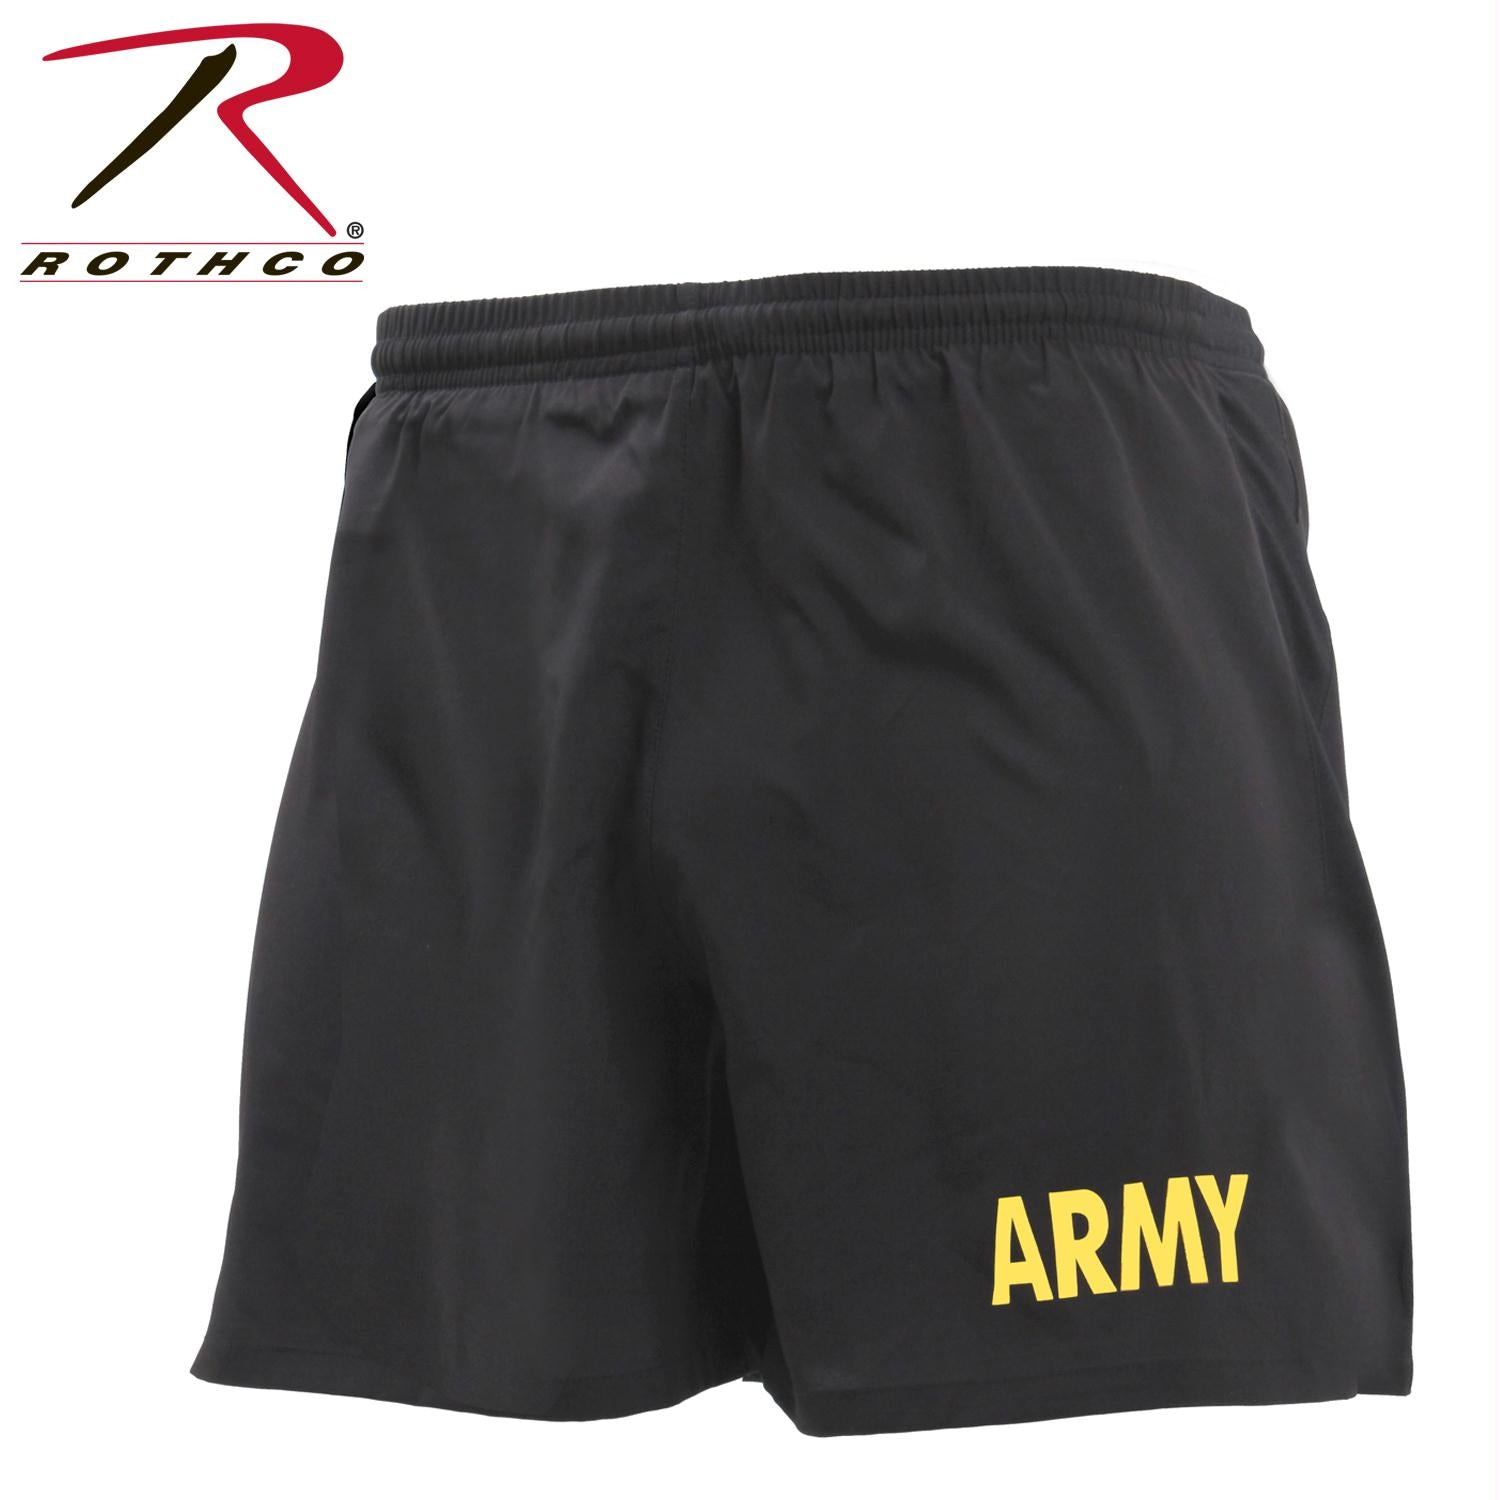 Rothco Army Physical Training Shorts - XS